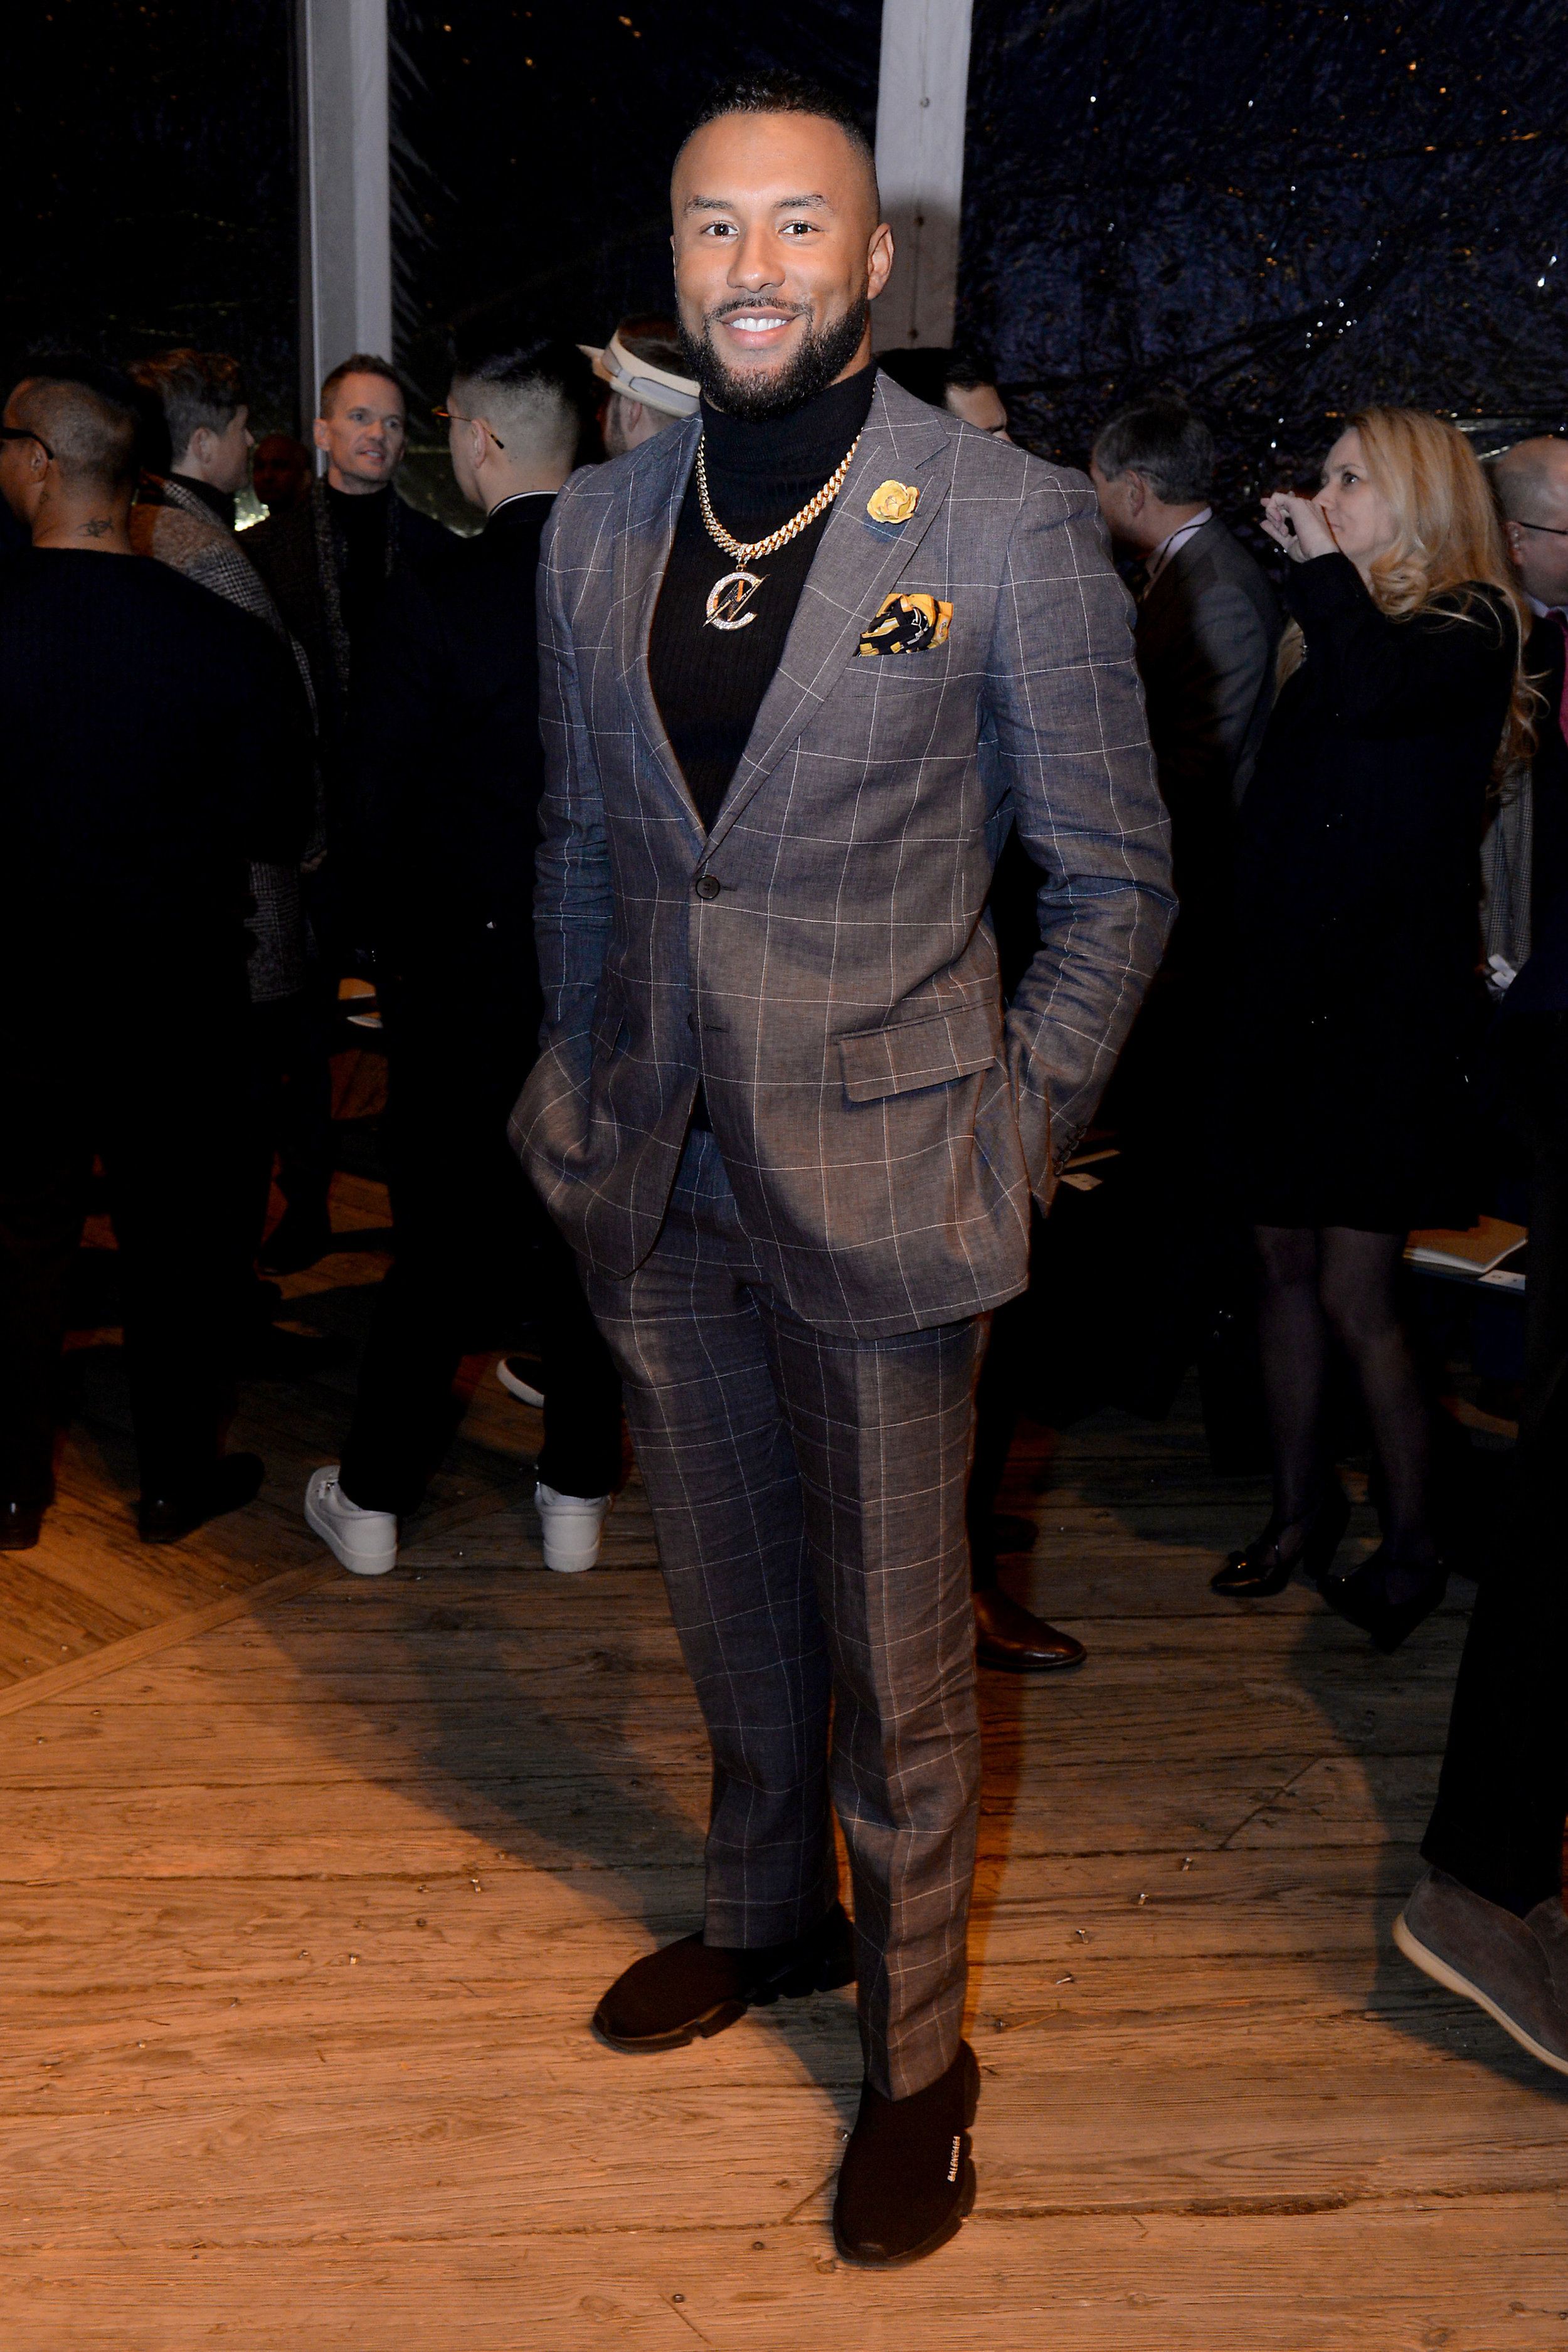 NFL player Nolan Carroll wears Fleur'd Pins Buttercup Snakeskin Cabbage Rose to Joseph Abboud FW19 2.4.19 - photo by Andrew Werner, AHW_9908.jpg